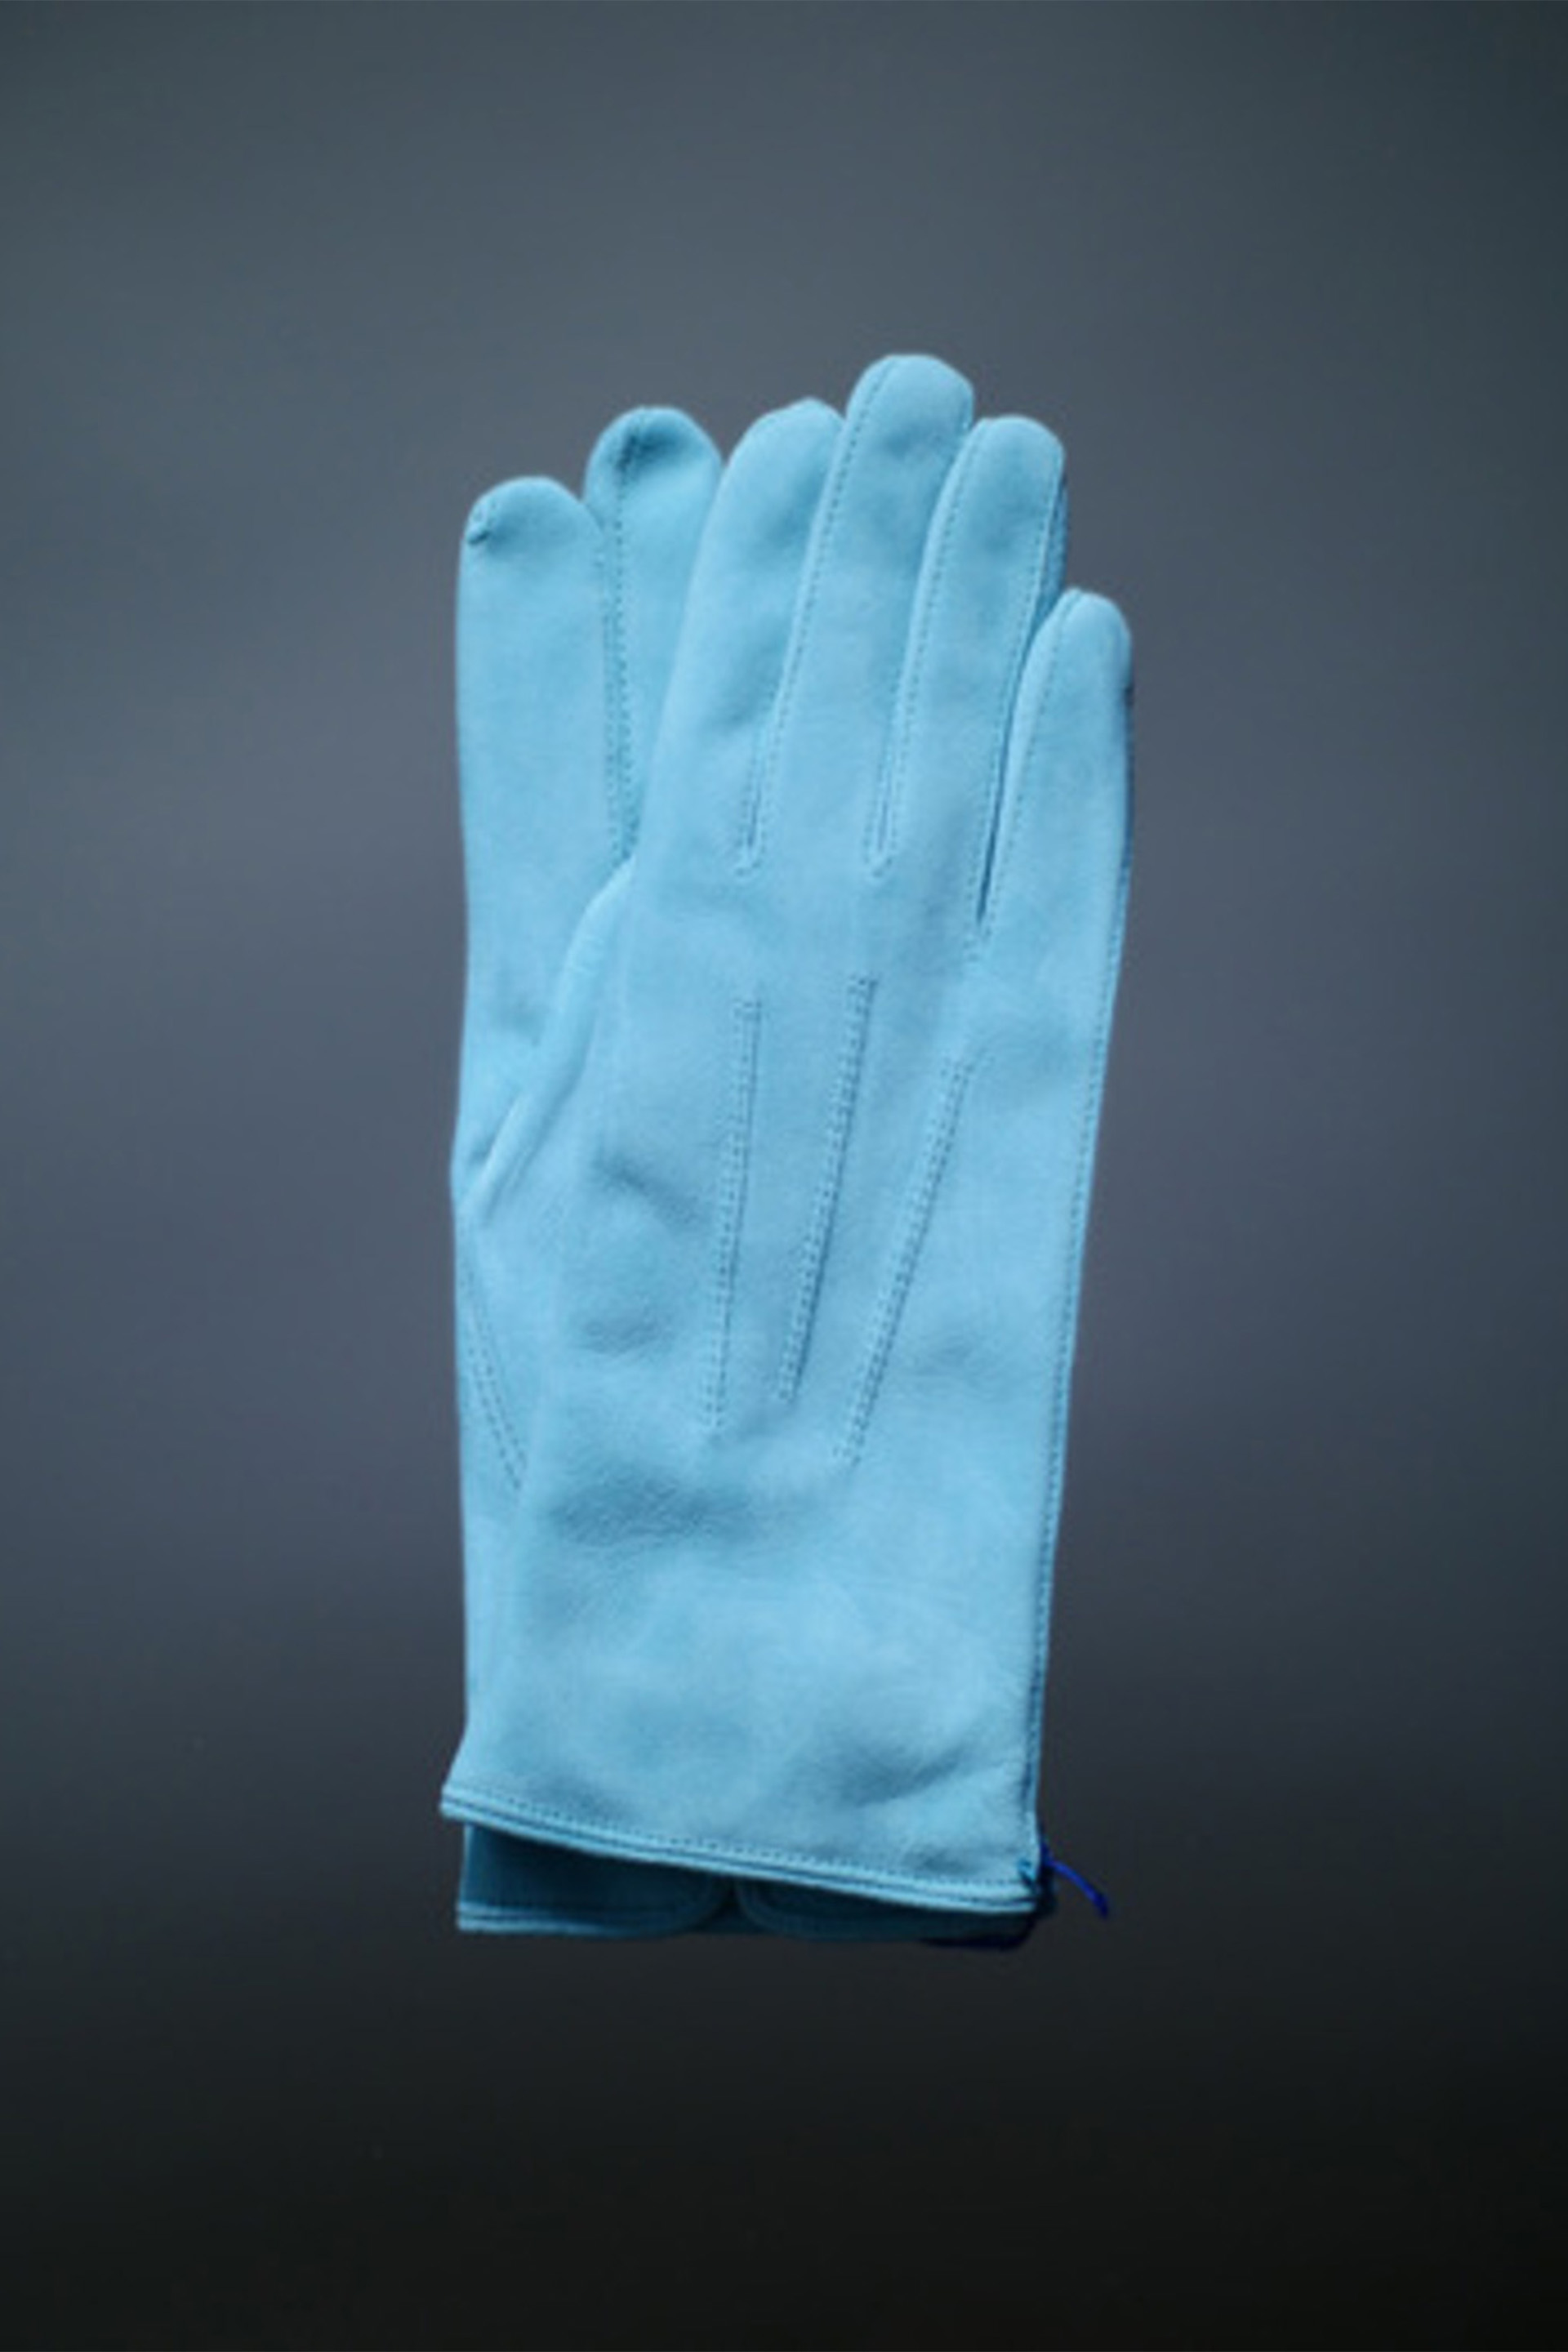 Thomas Riemer Gloves (Danubio)